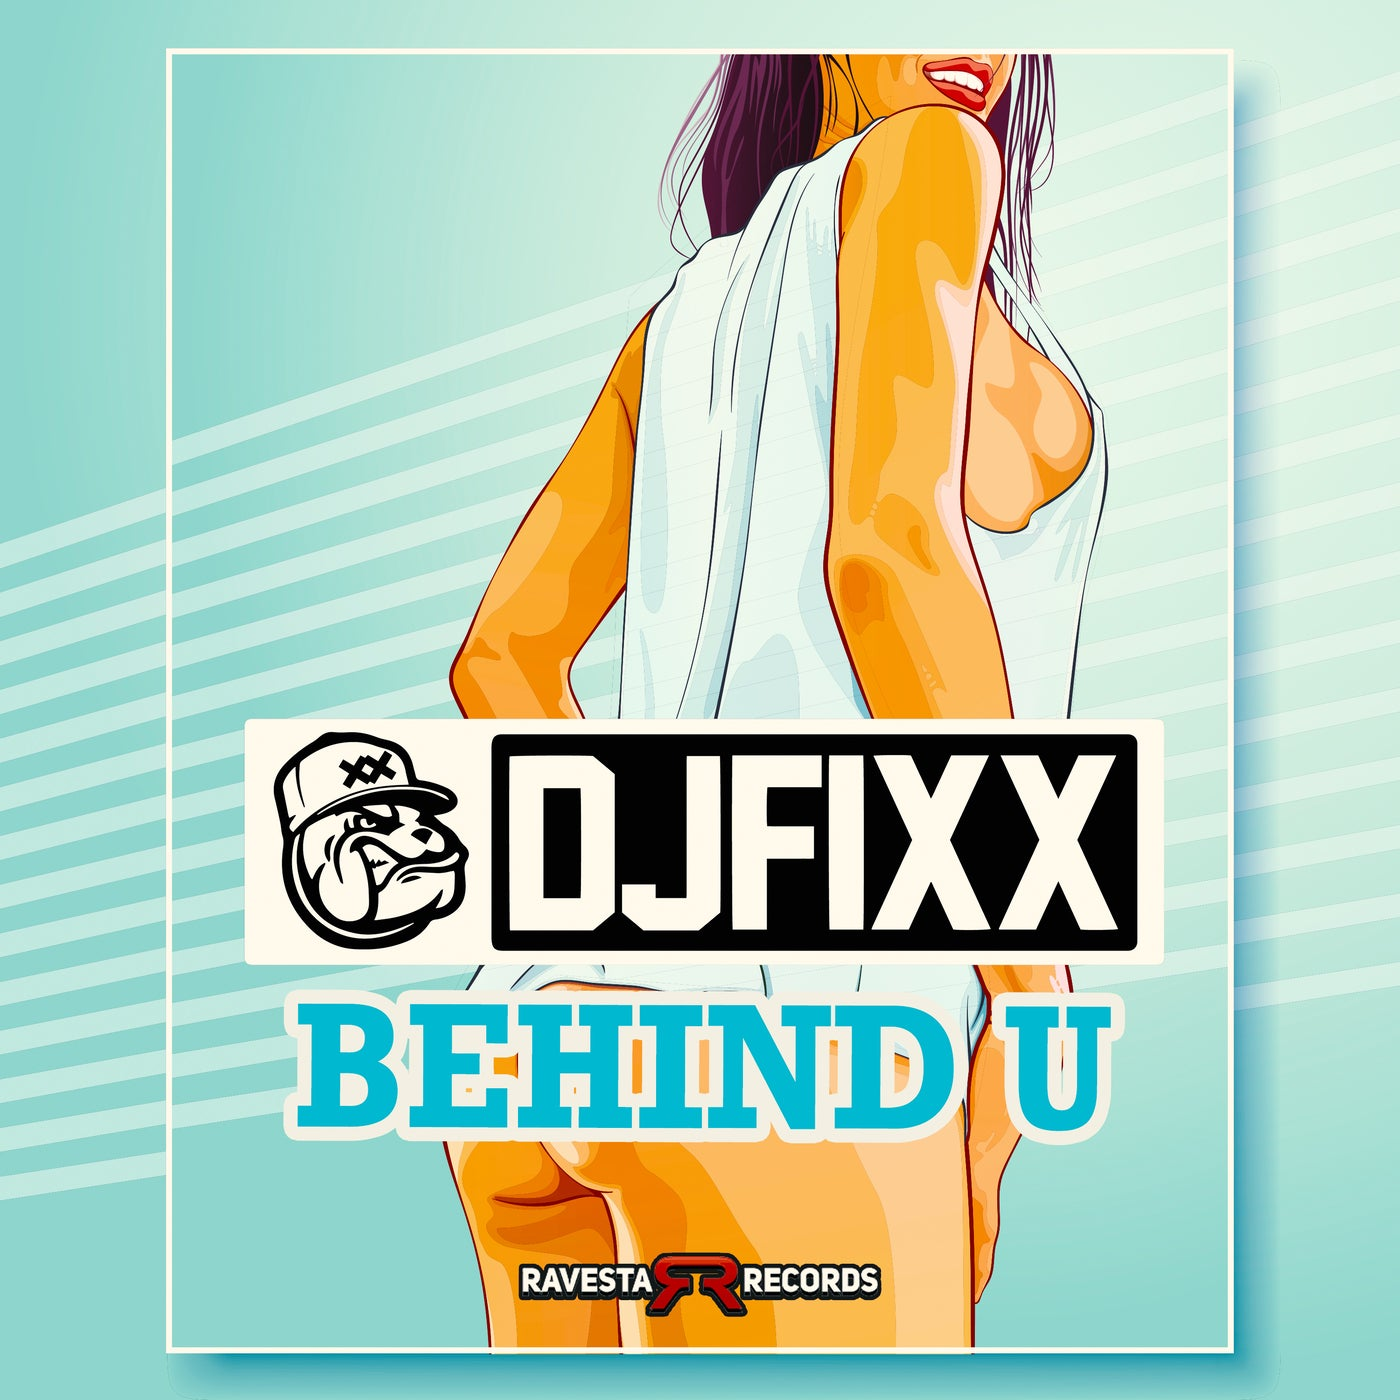 Behind U (Original Mix)